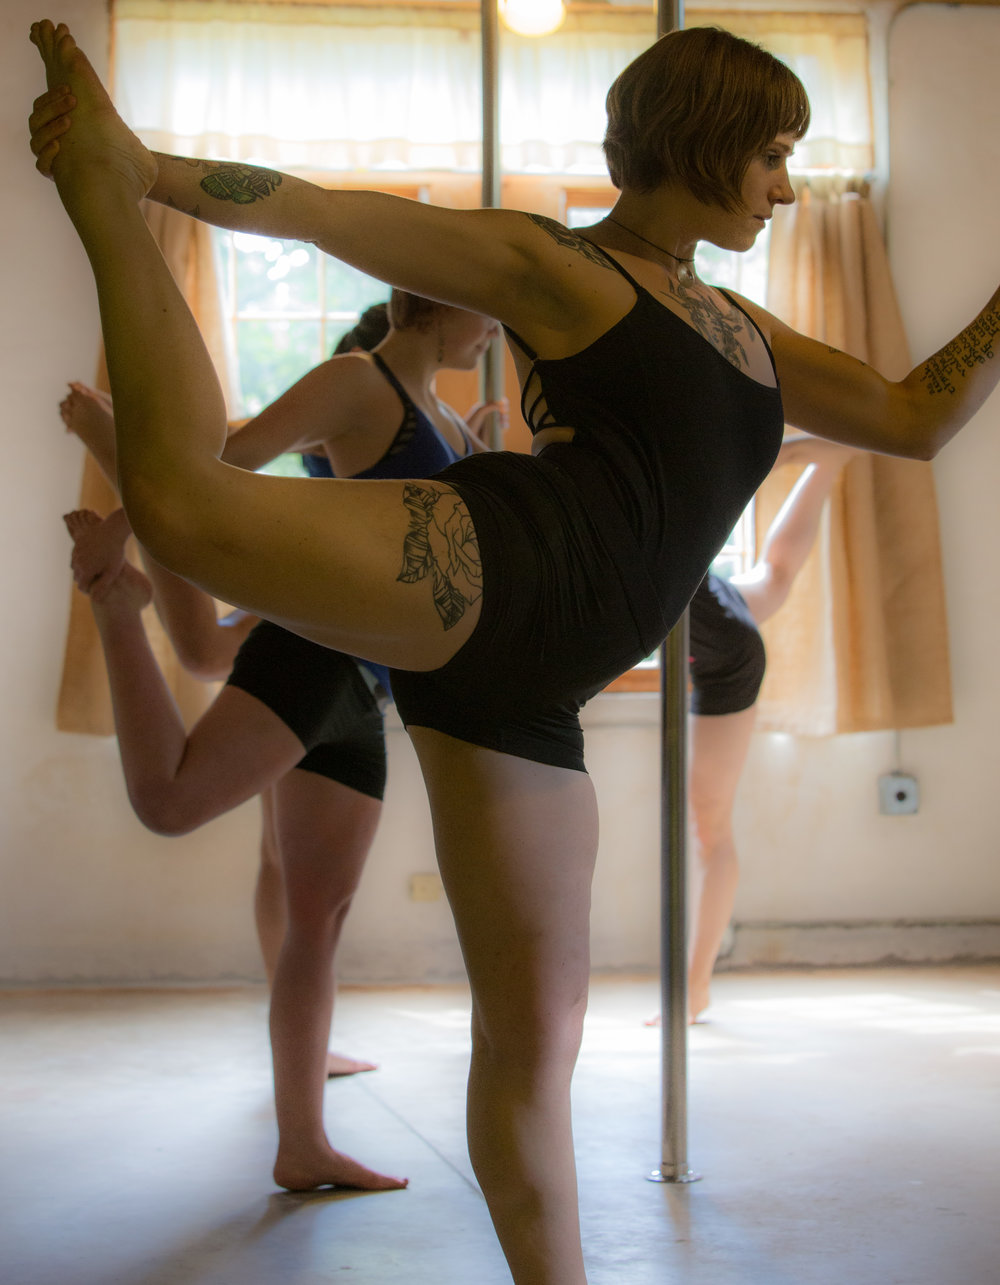 Allow the Pole to Enhance Your Favorite Stretches.